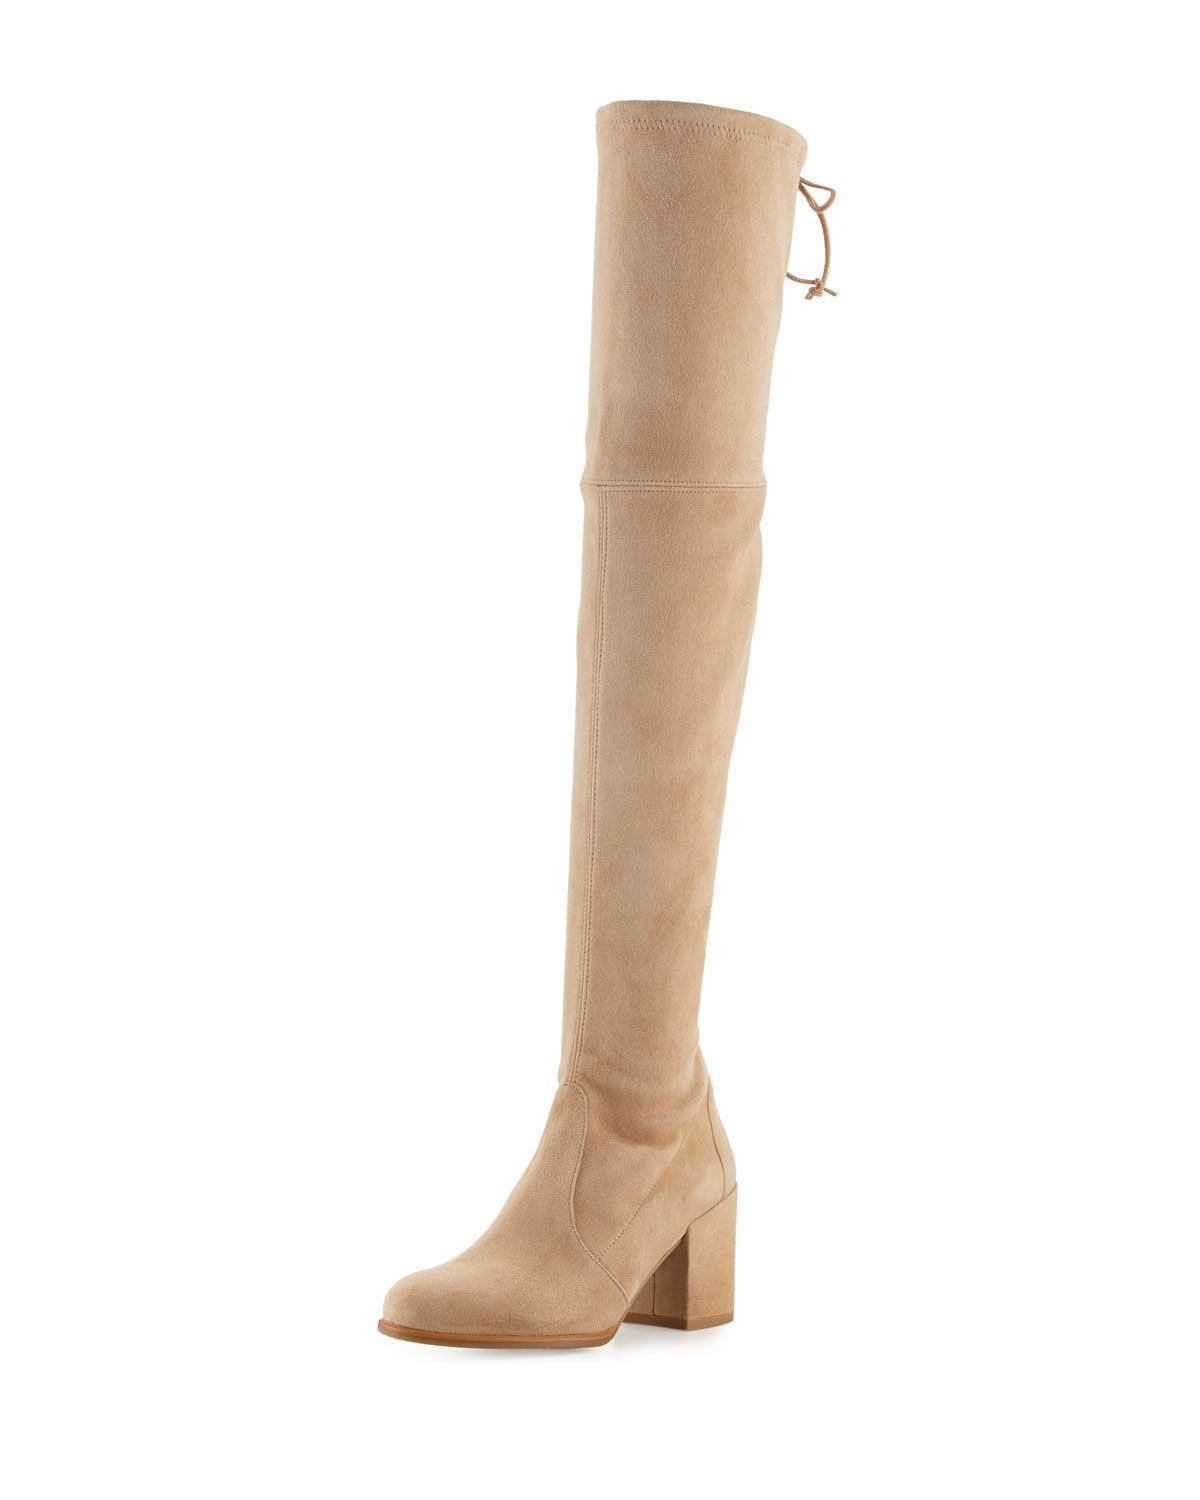 1f837b6fcea8 Tieland Suede Over-the-Knee Boot